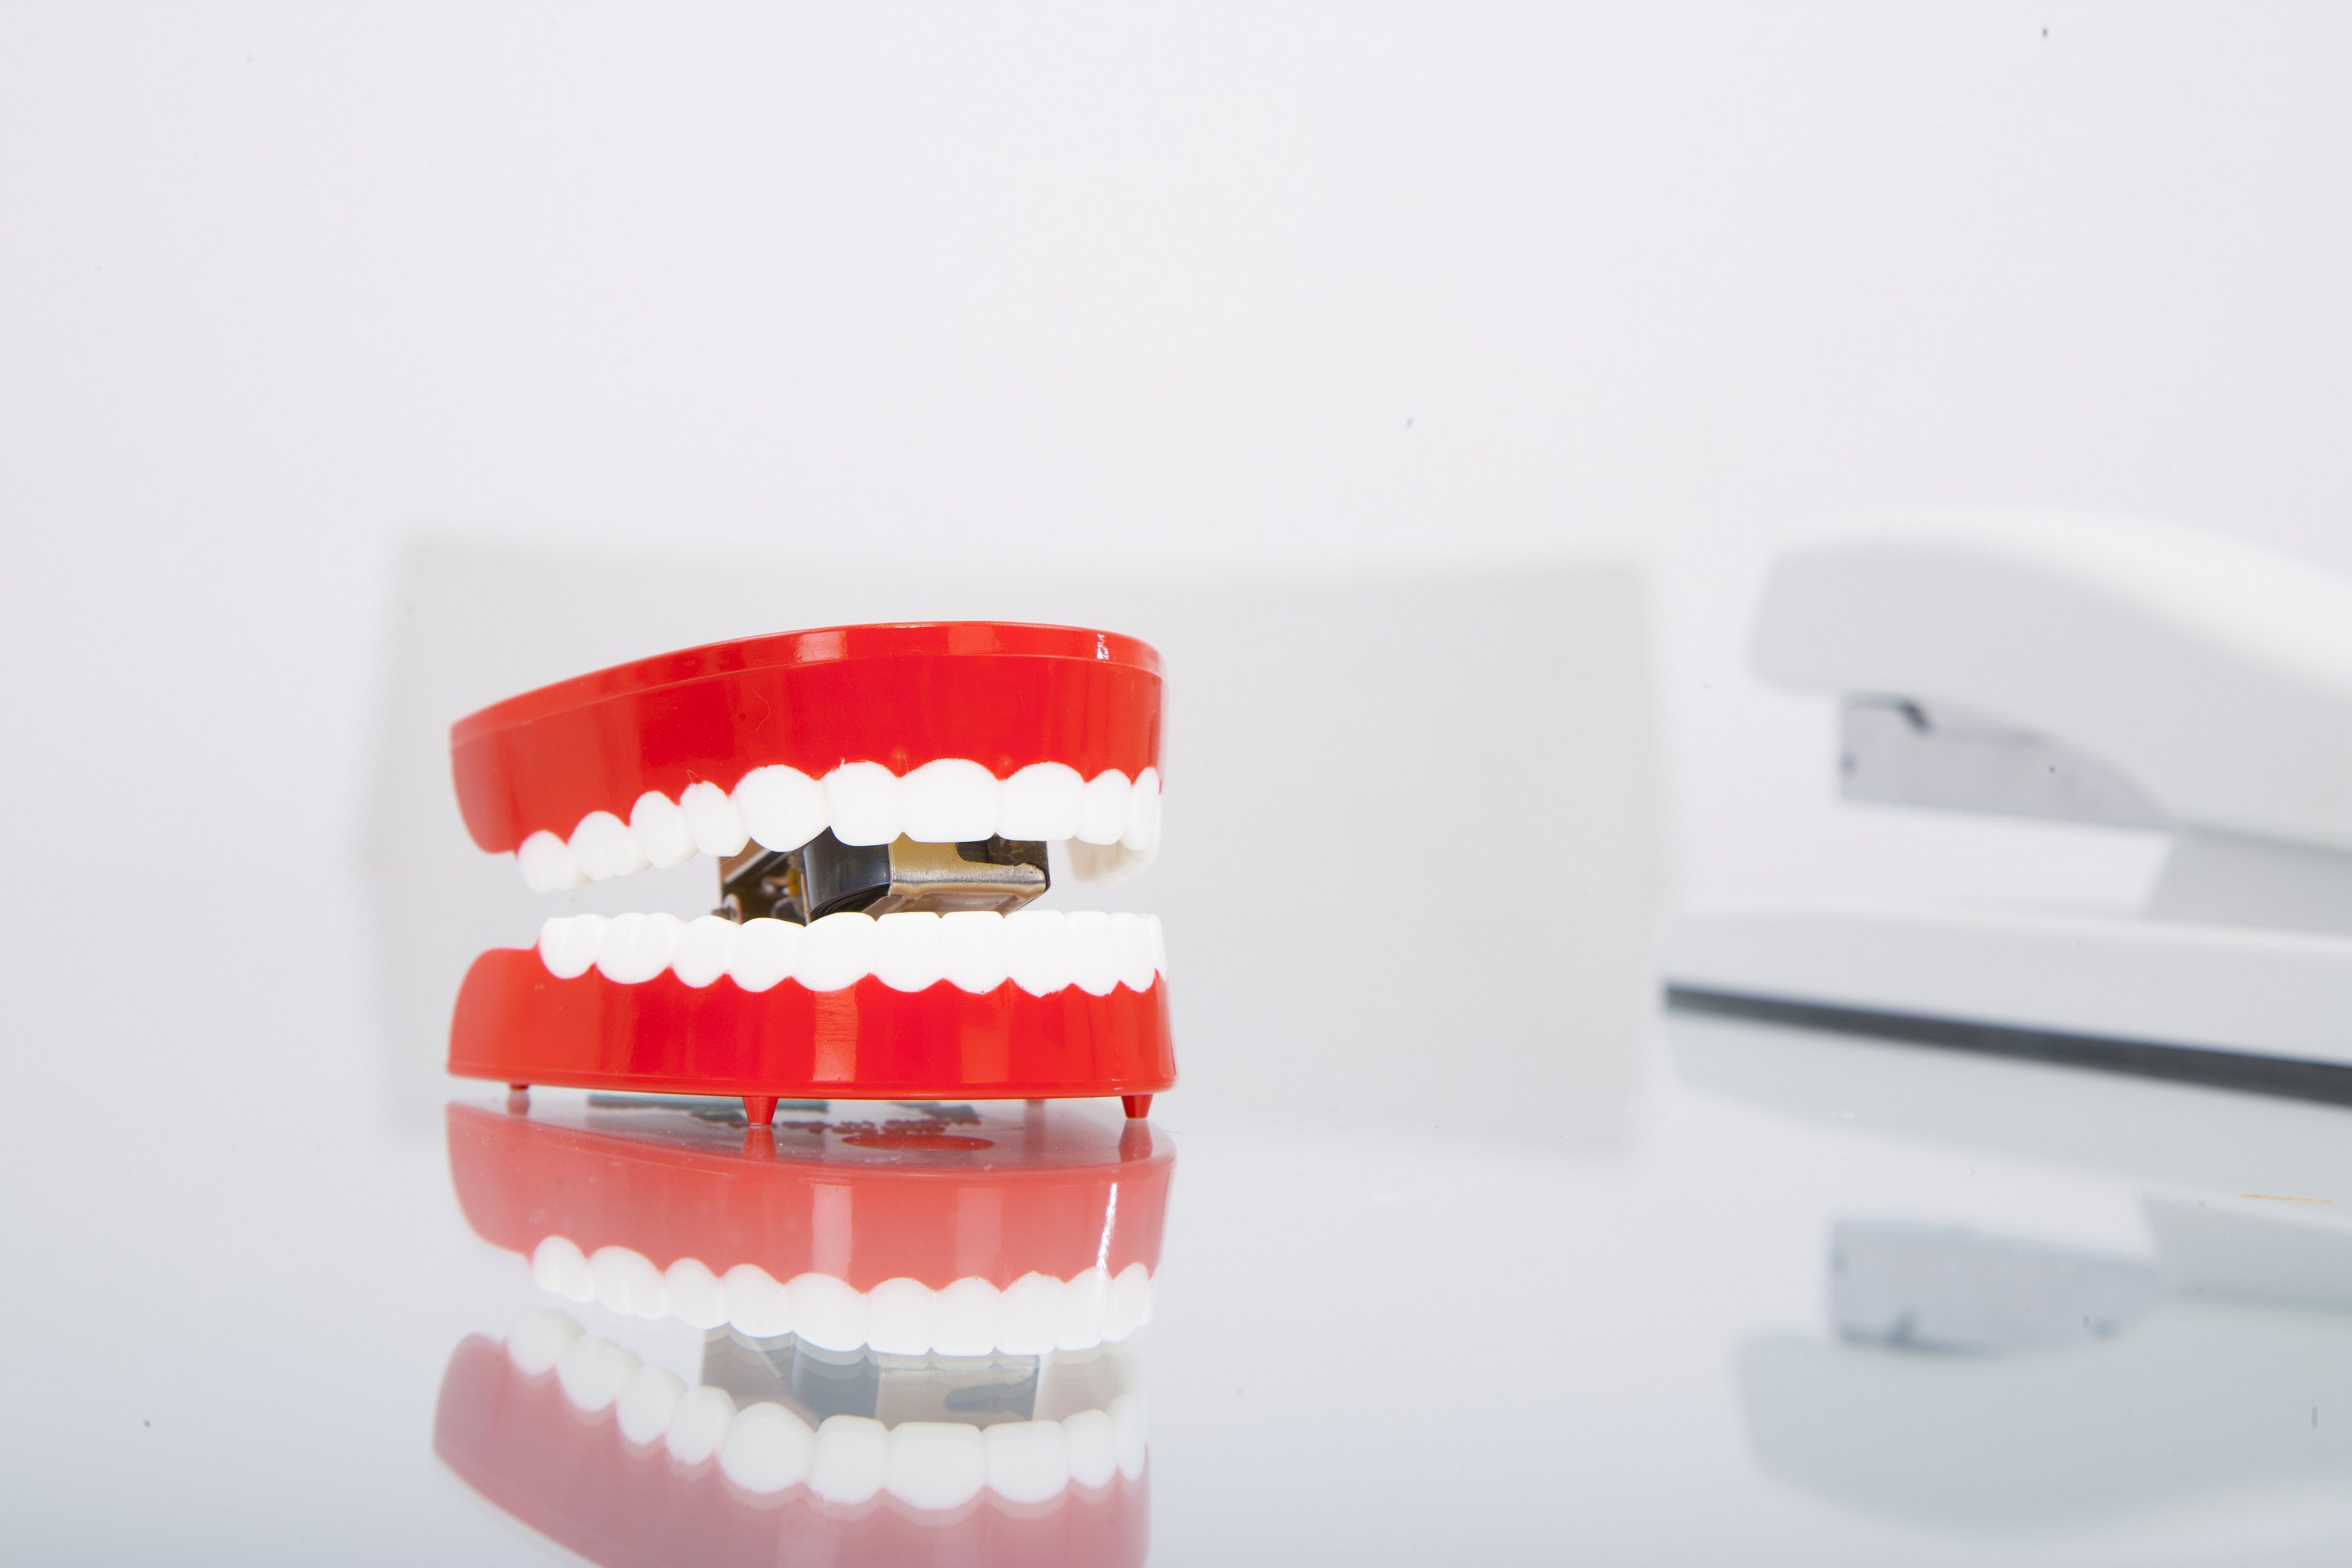 The Truth About False Teeth: Why Dentures May Be Losing Their Grip As Artificial Teeth